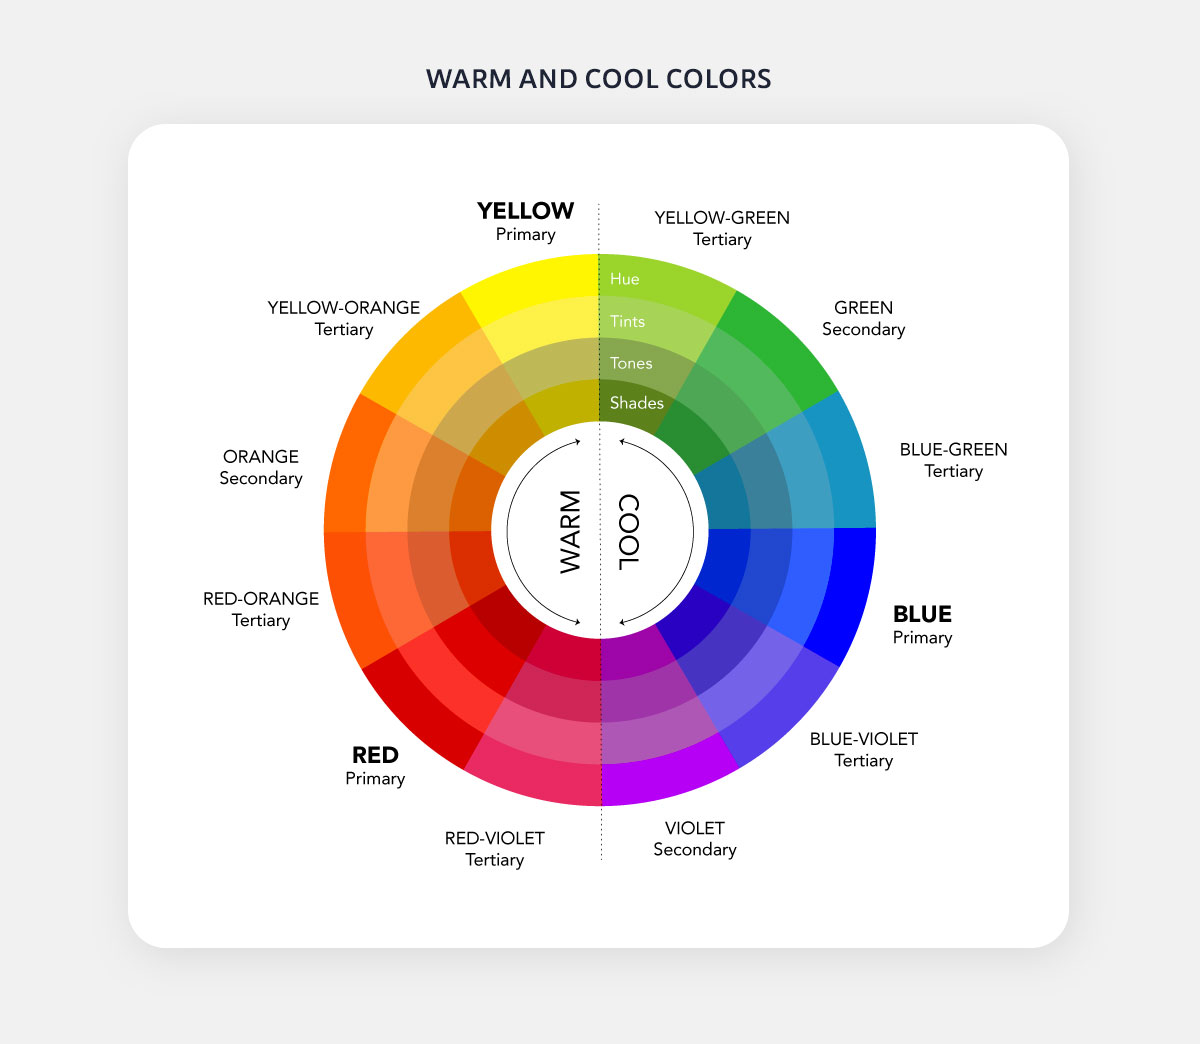 color psychology in marketing - warm and cool colors